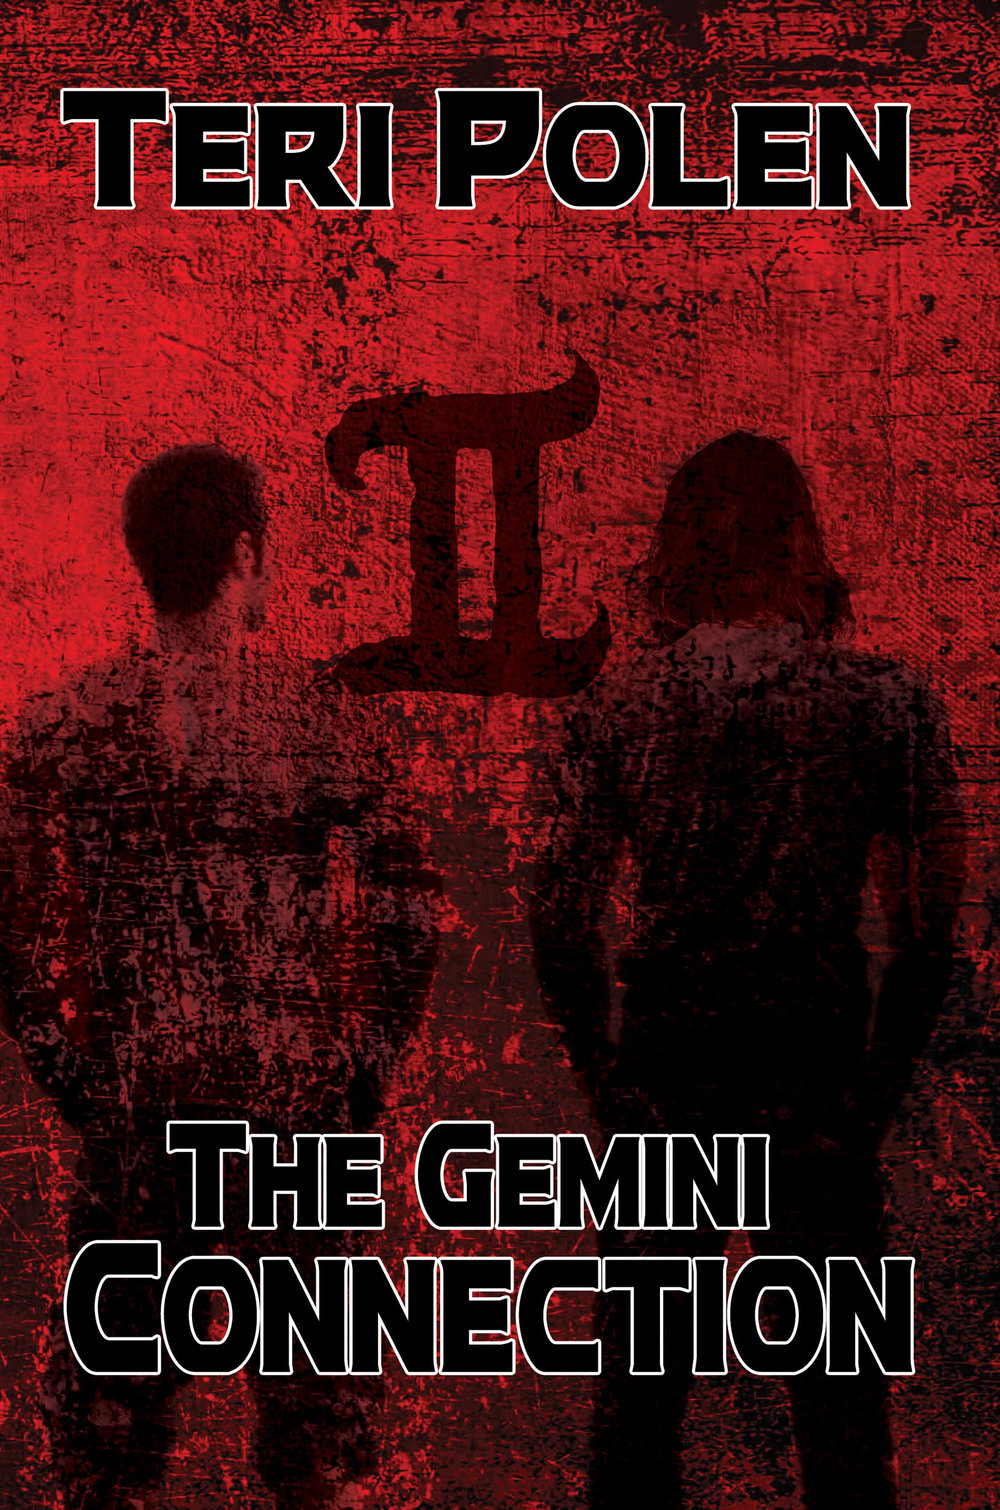 The Gemini Connection eimage.jpg